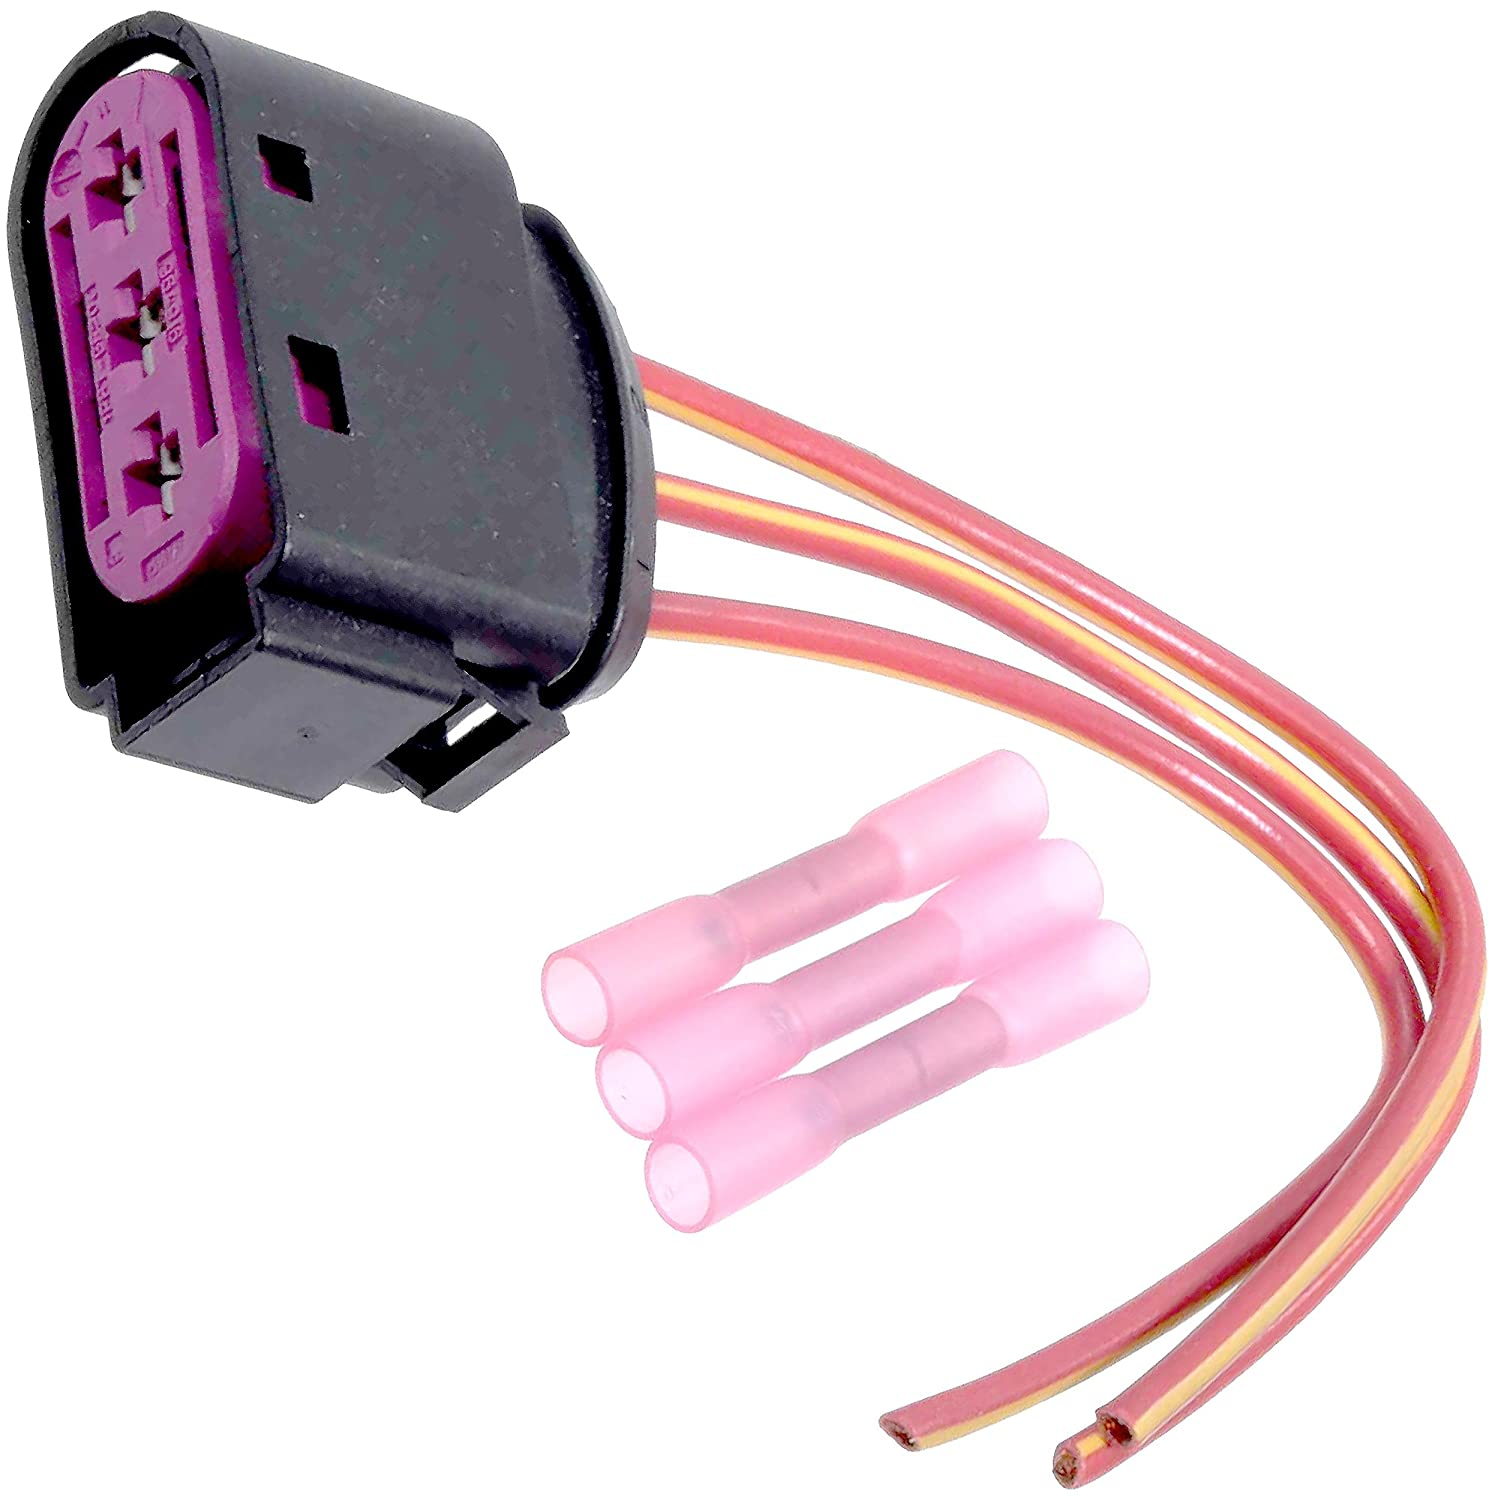 Apdty 133818 Wiring Harness Pigtail Connector Fits High 2006 Jetta Fuse Box Connectors Voltage Mounted On Battery 1998 Vw Beetle 1999 2005 Or Golf